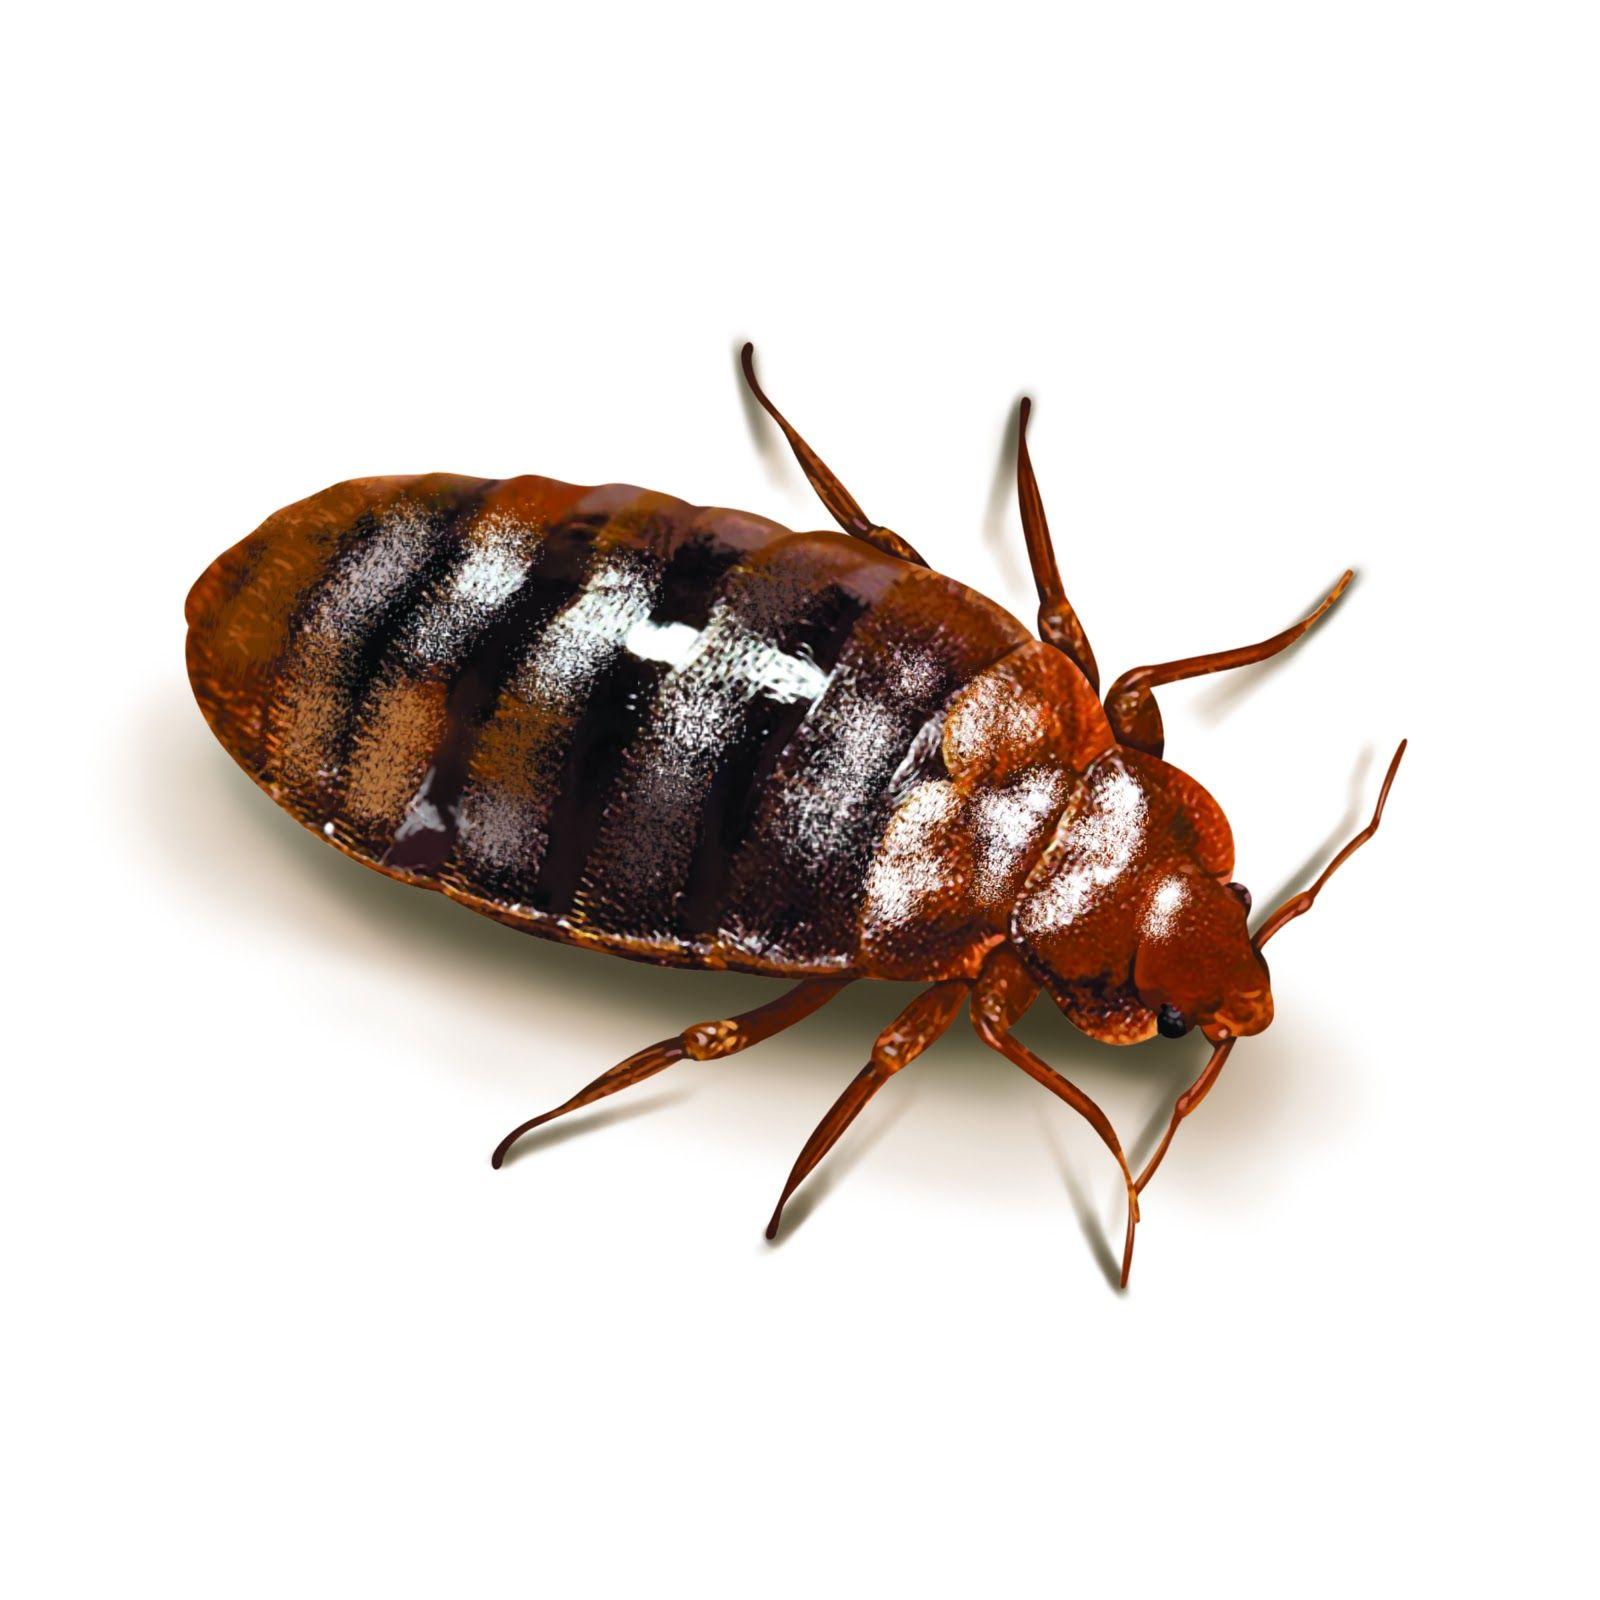 Many people have a fear of seeking remedies for bed bugs